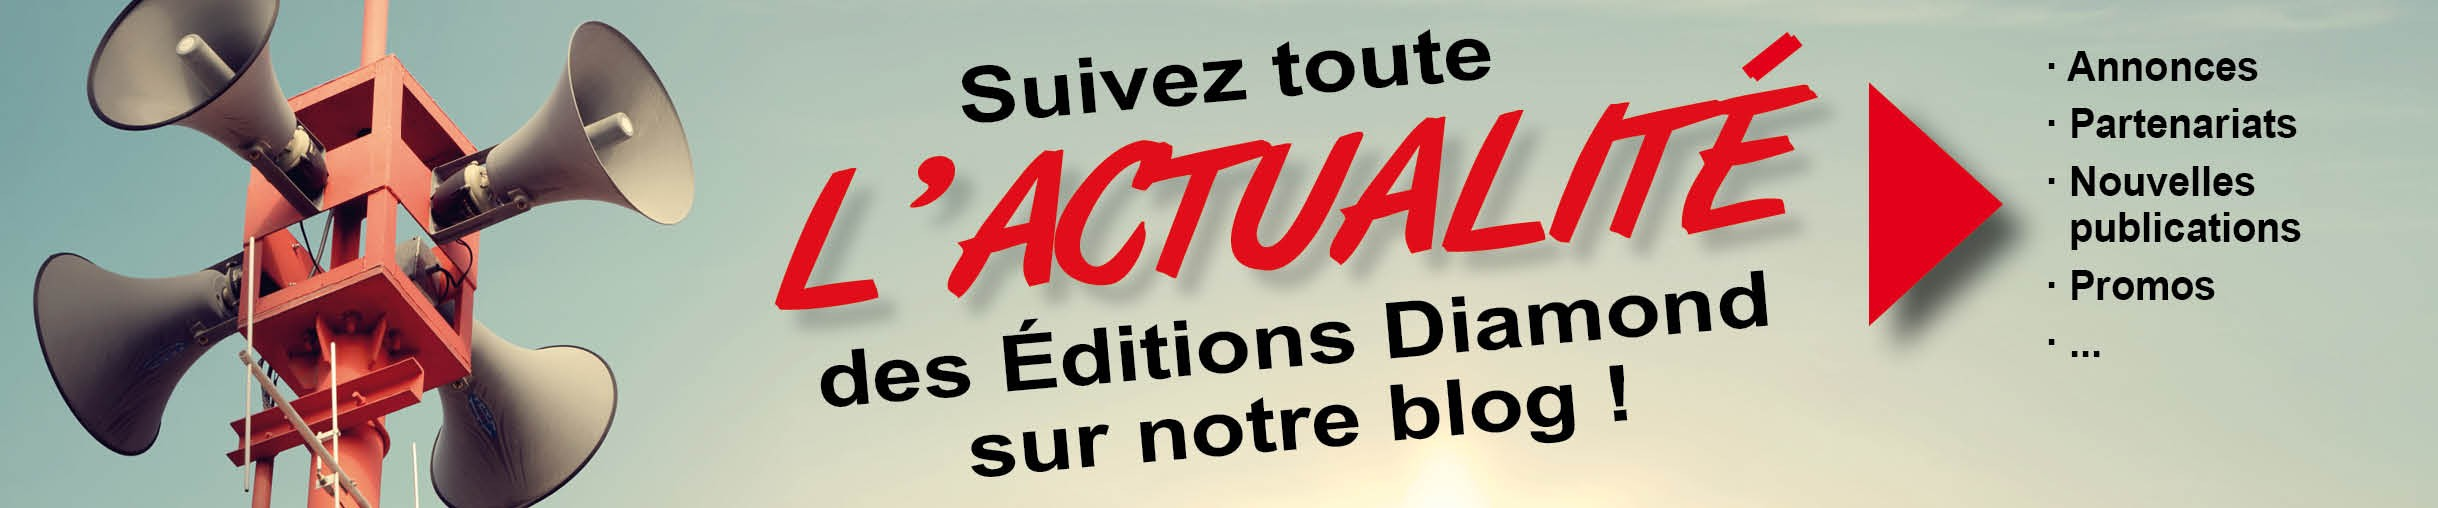 Le blog des Editions Diamond